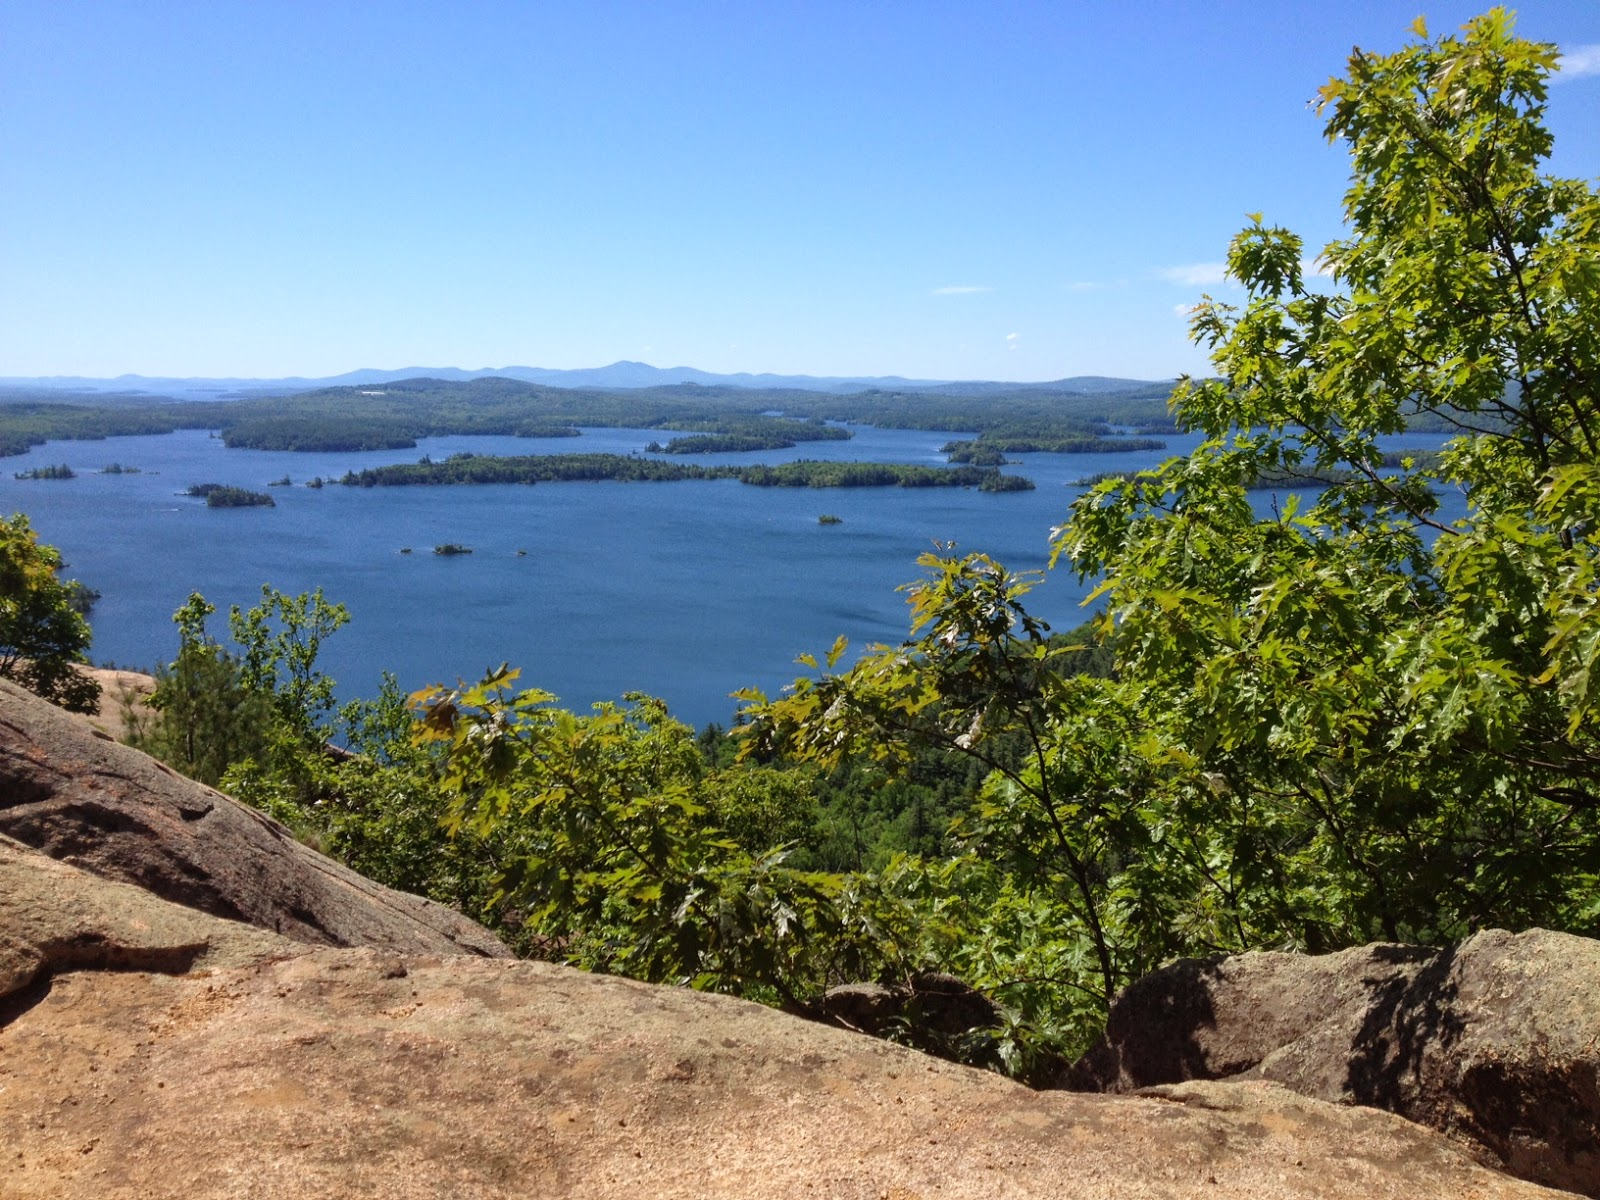 View from Rattlesnake Mountain at Squam lake